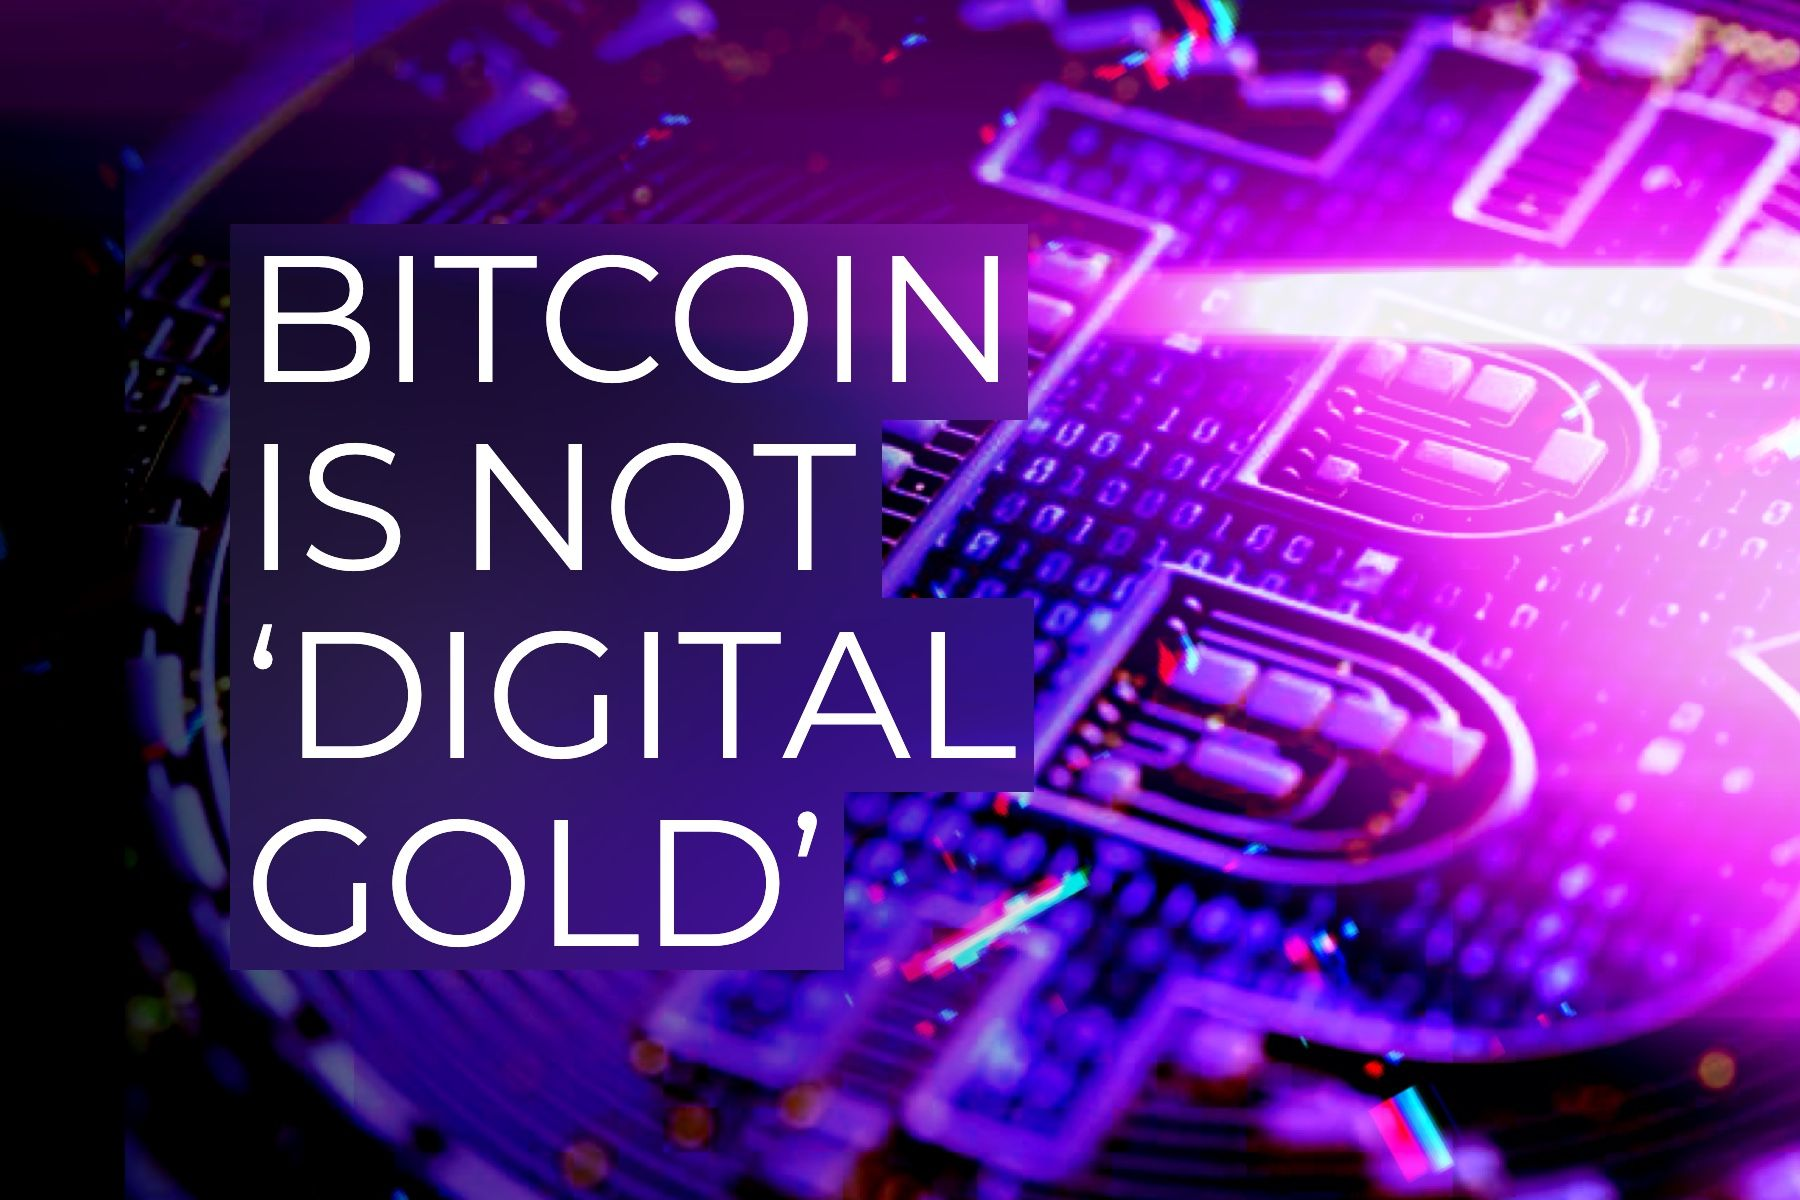 Bitcoin is not 'digital gold'. Here's why